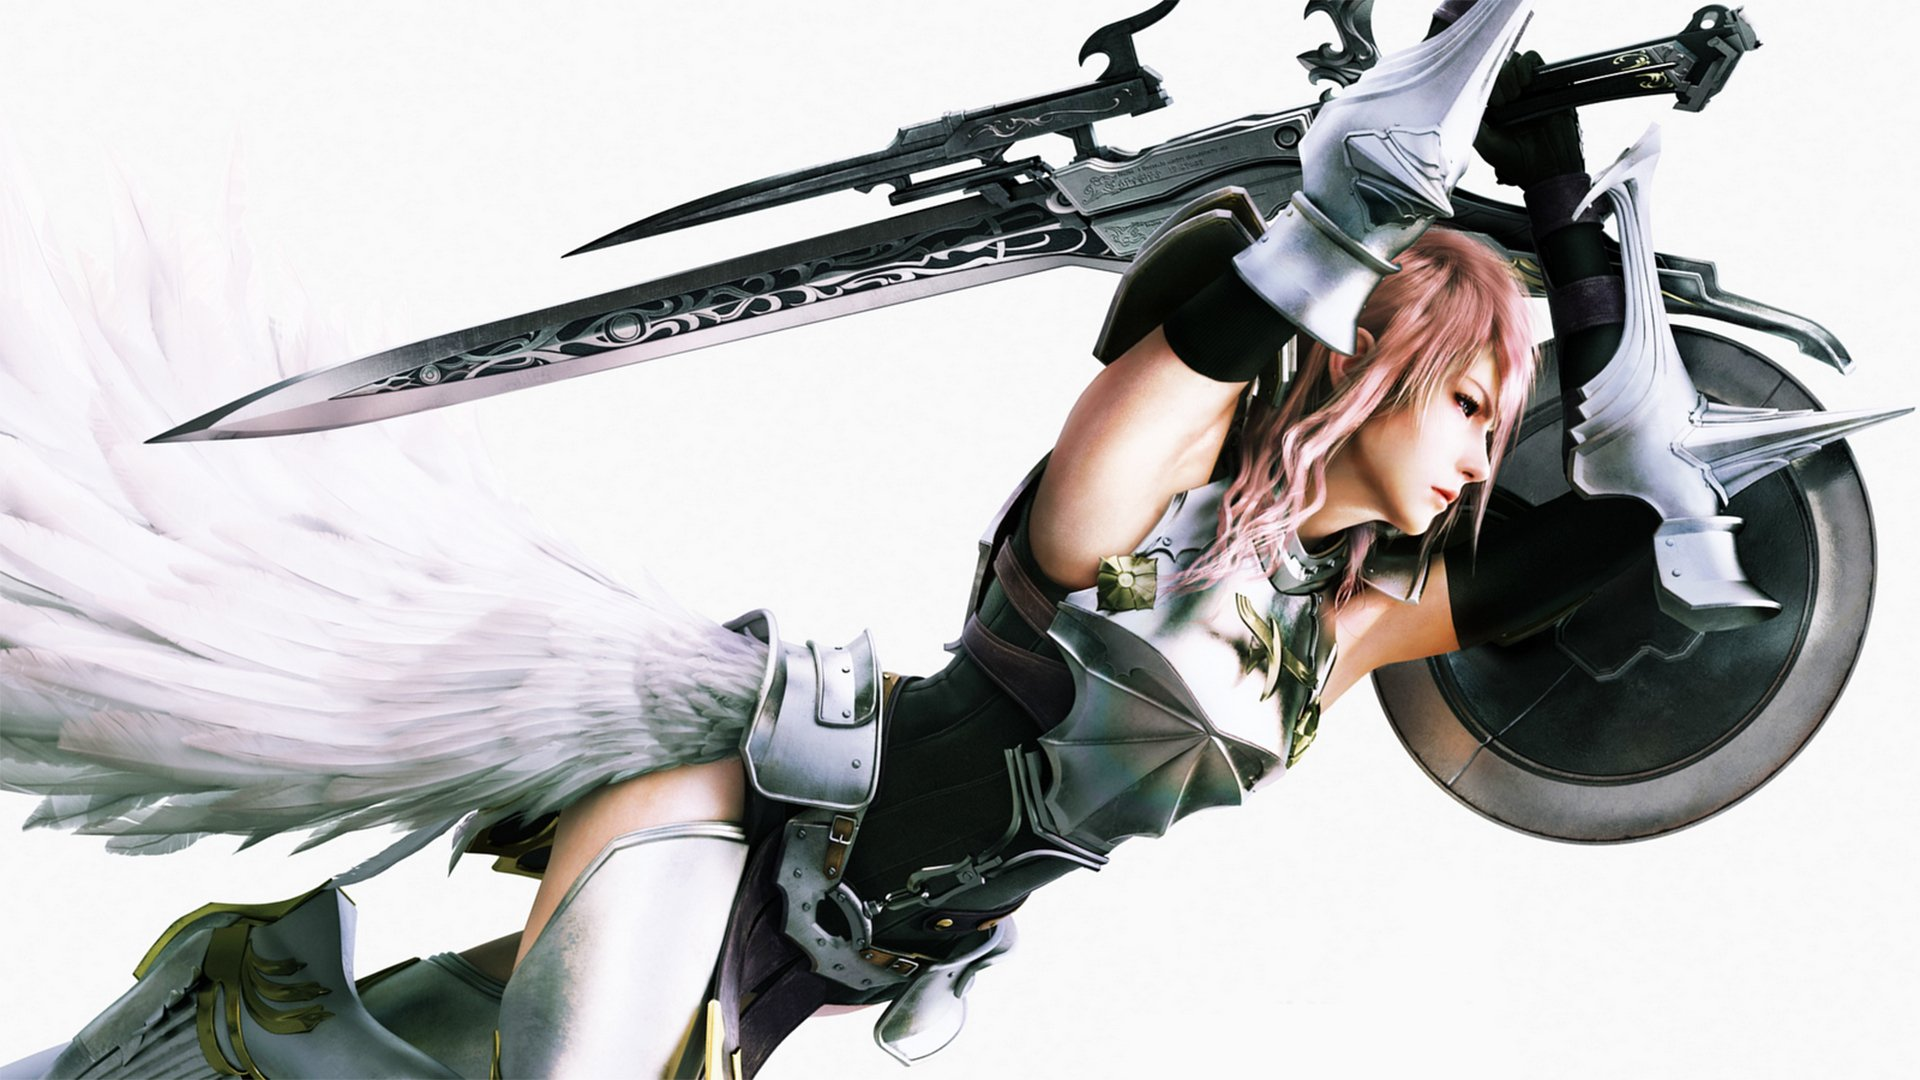 33 final fantasy xiii-2 hd wallpapers | background images